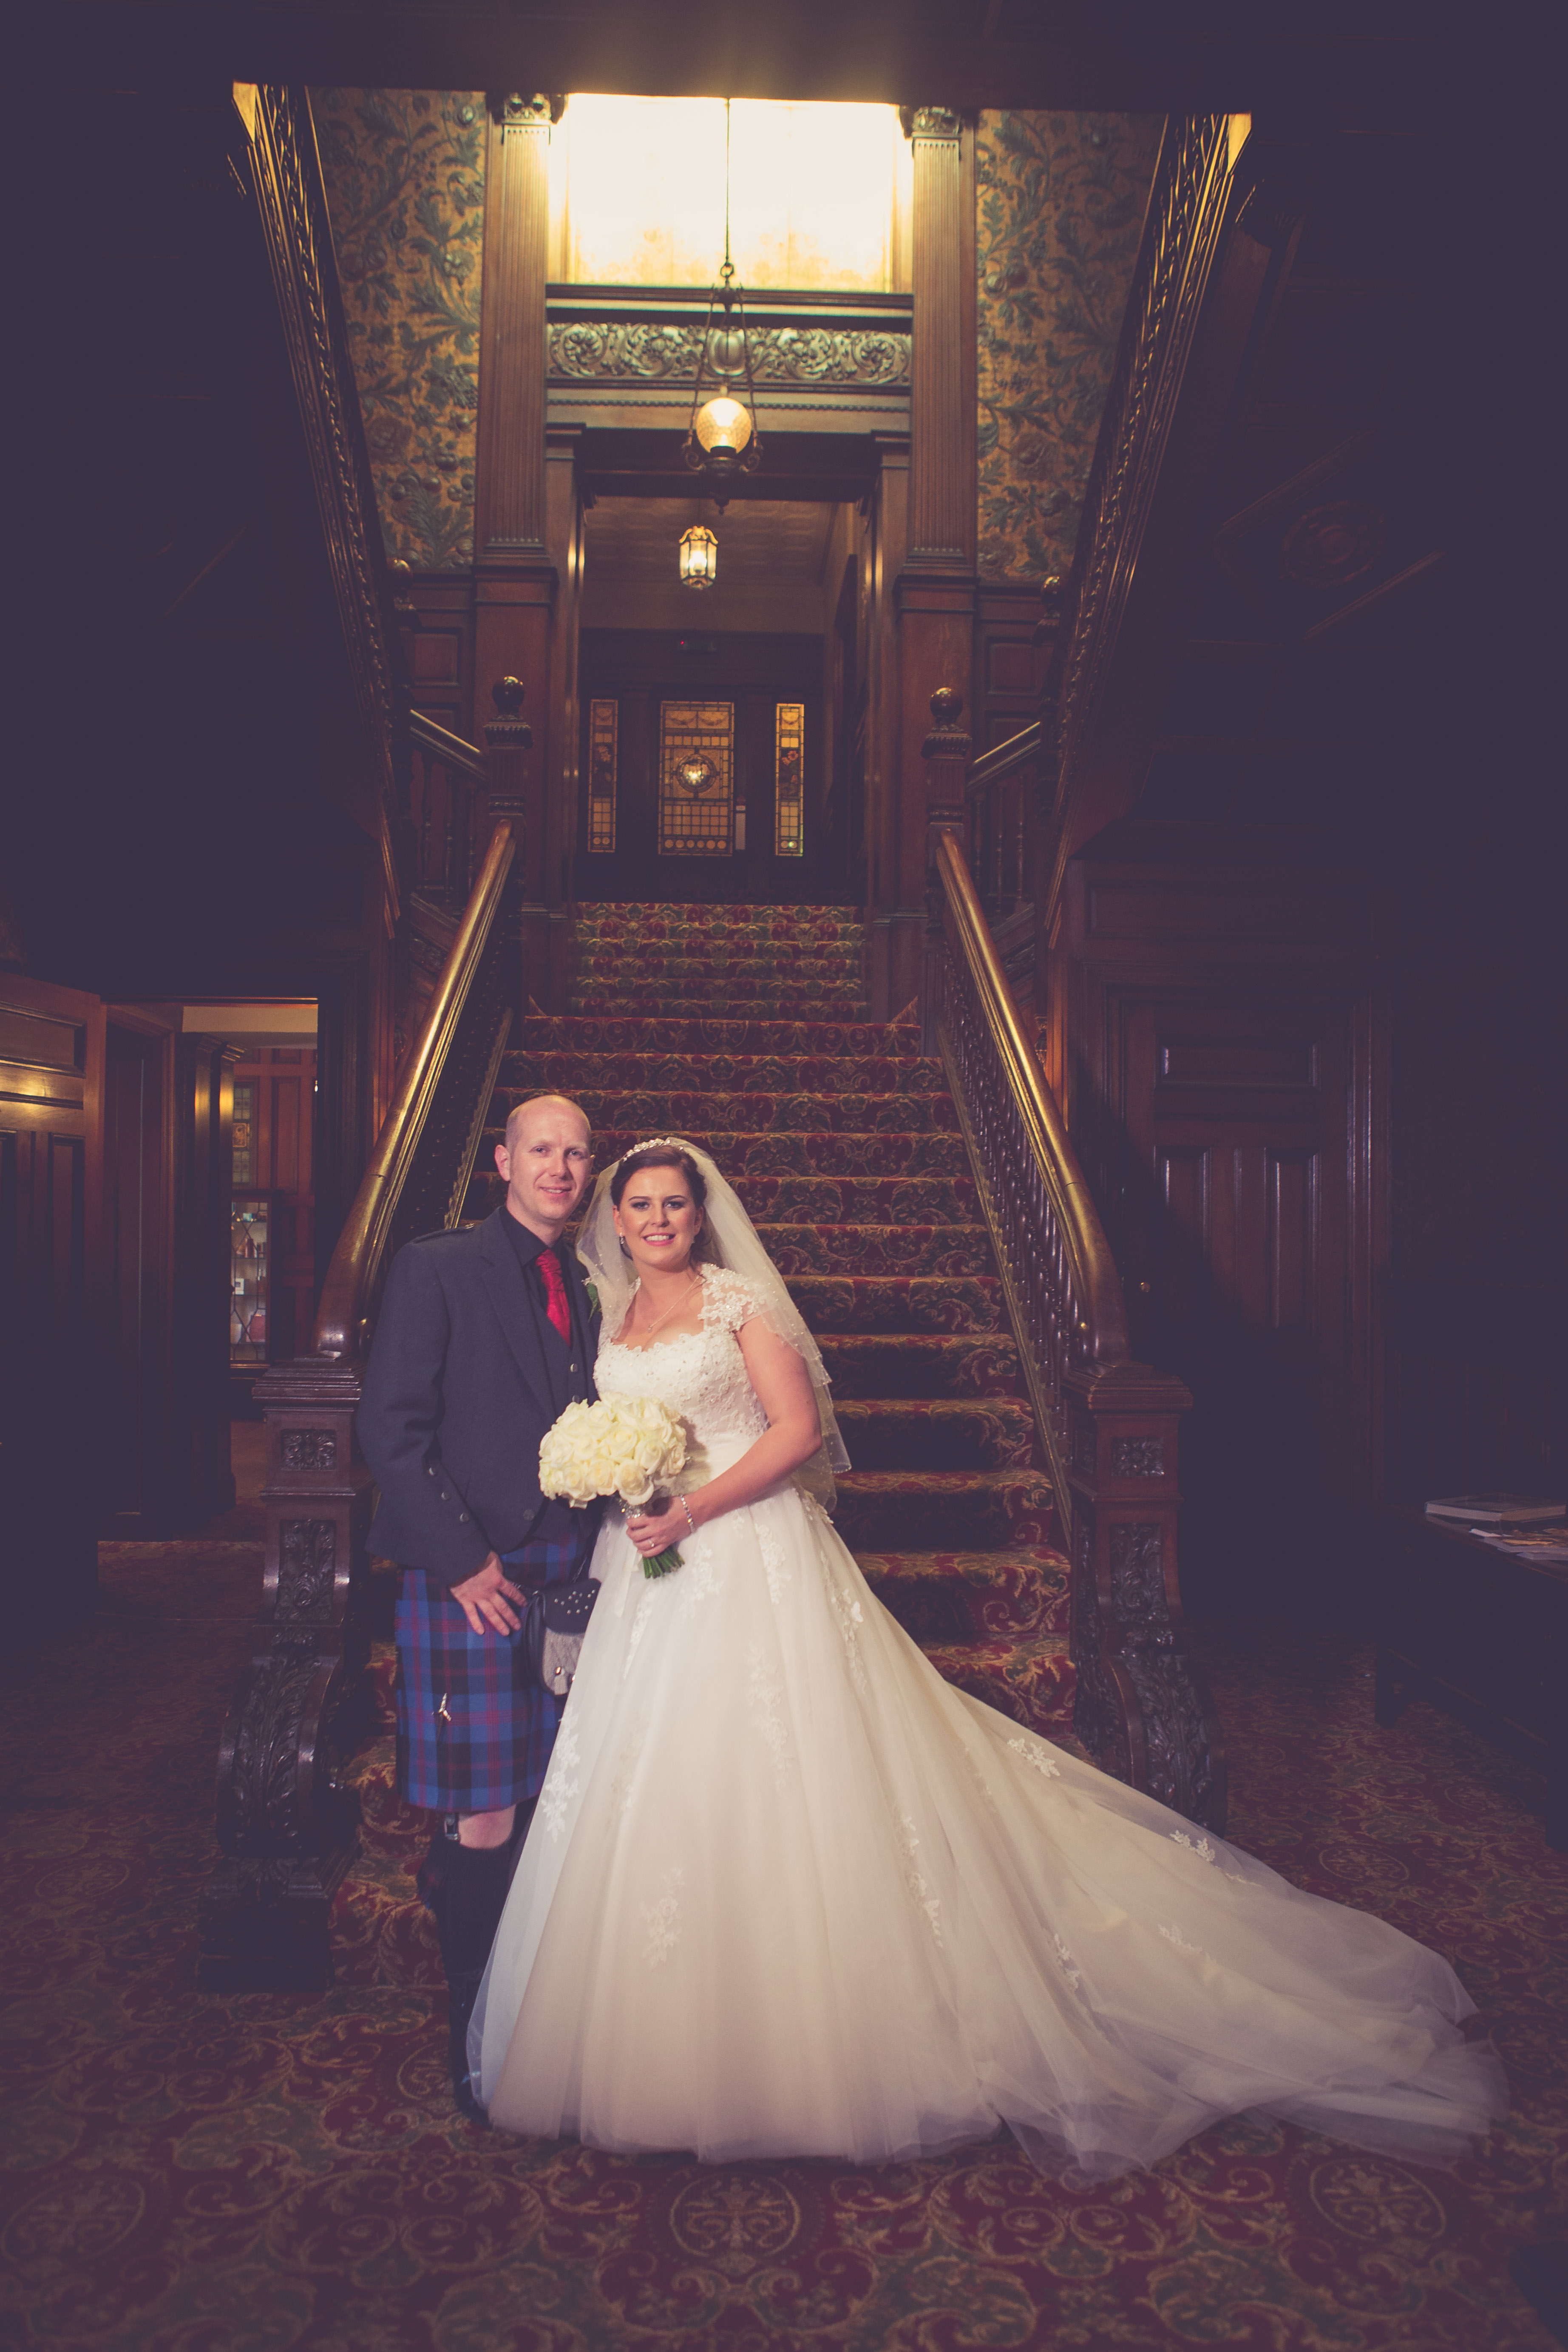 Your Real Weddings - Stephanie & Adam